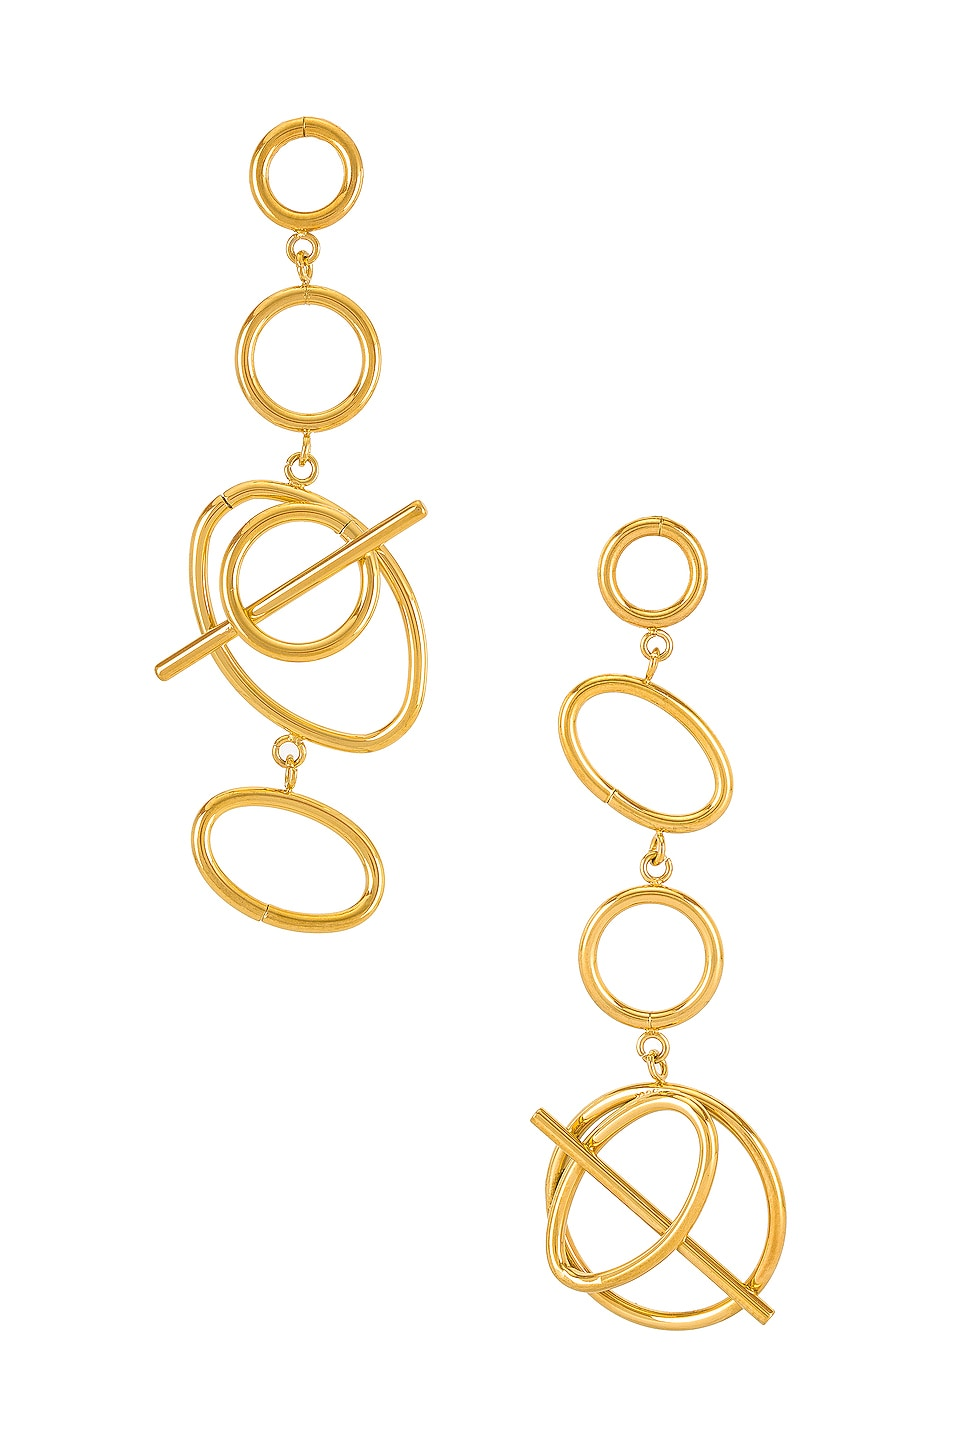 Wanderlust + Co Multi Helix Earrings in Gold